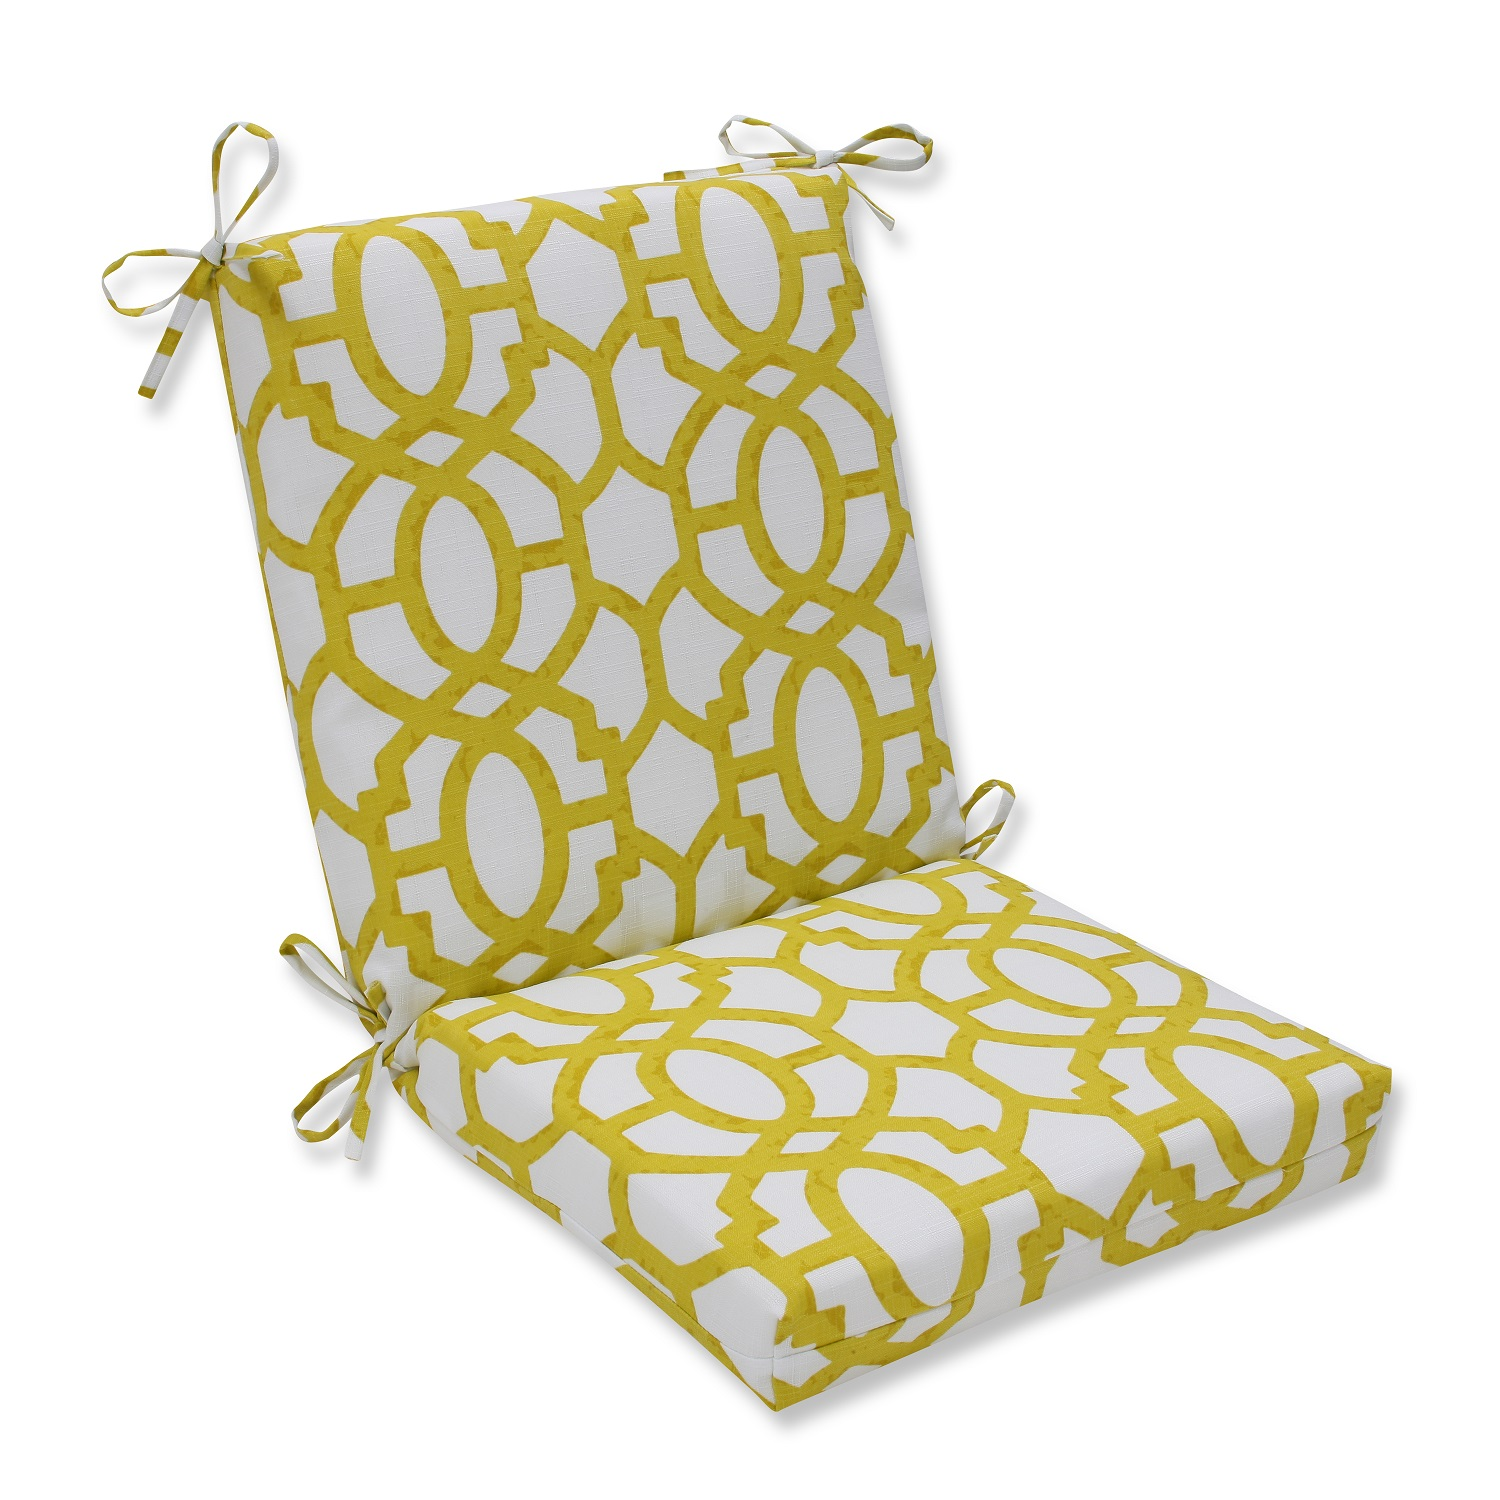 36 5 white and yellow outdoor patio chair cushion walmart com